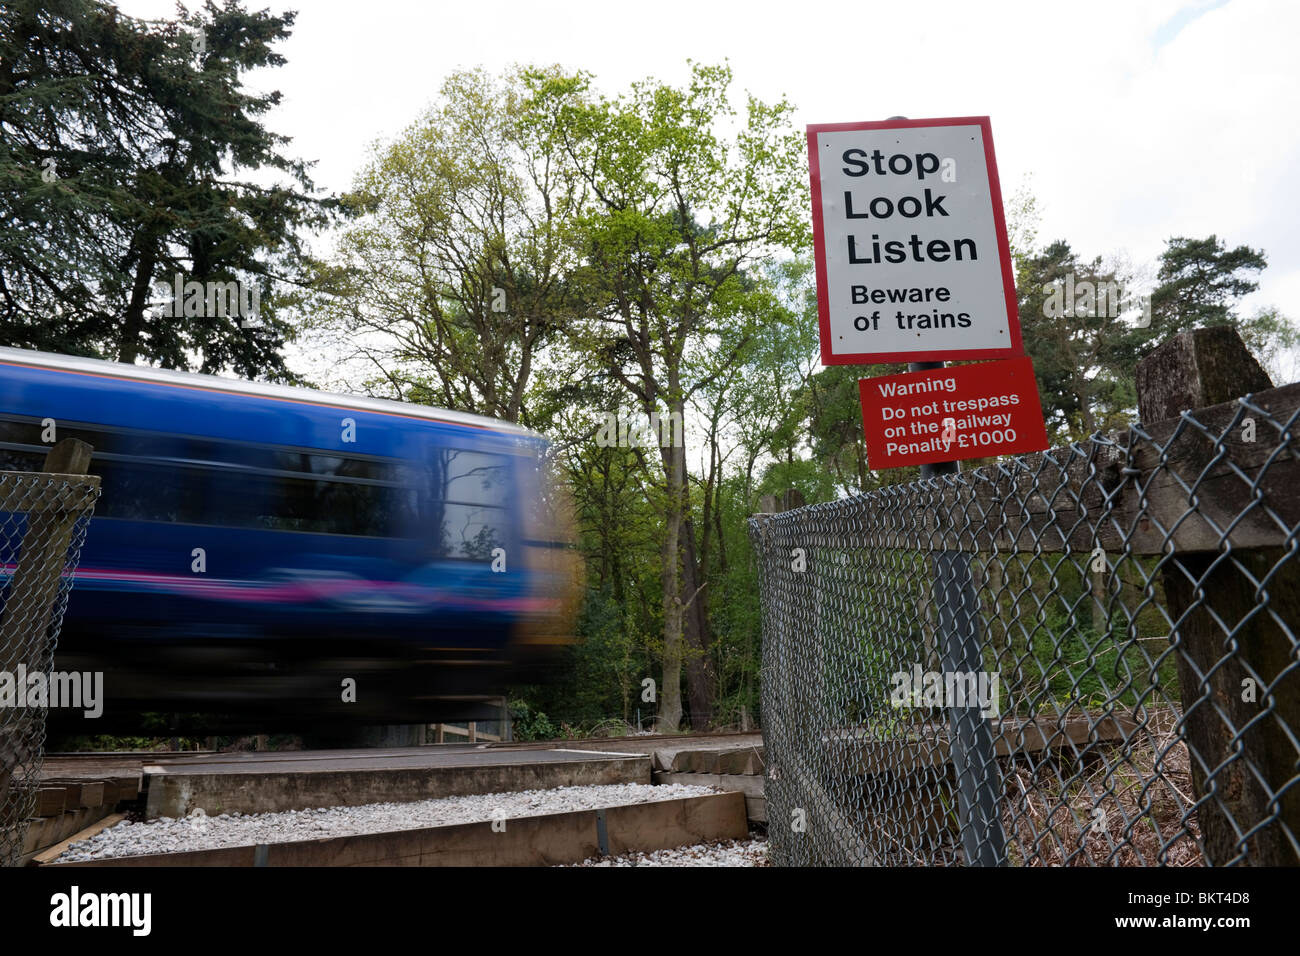 Footpath level crossing with Stop Look and Listen board and fast train passing - 1 - Stock Image